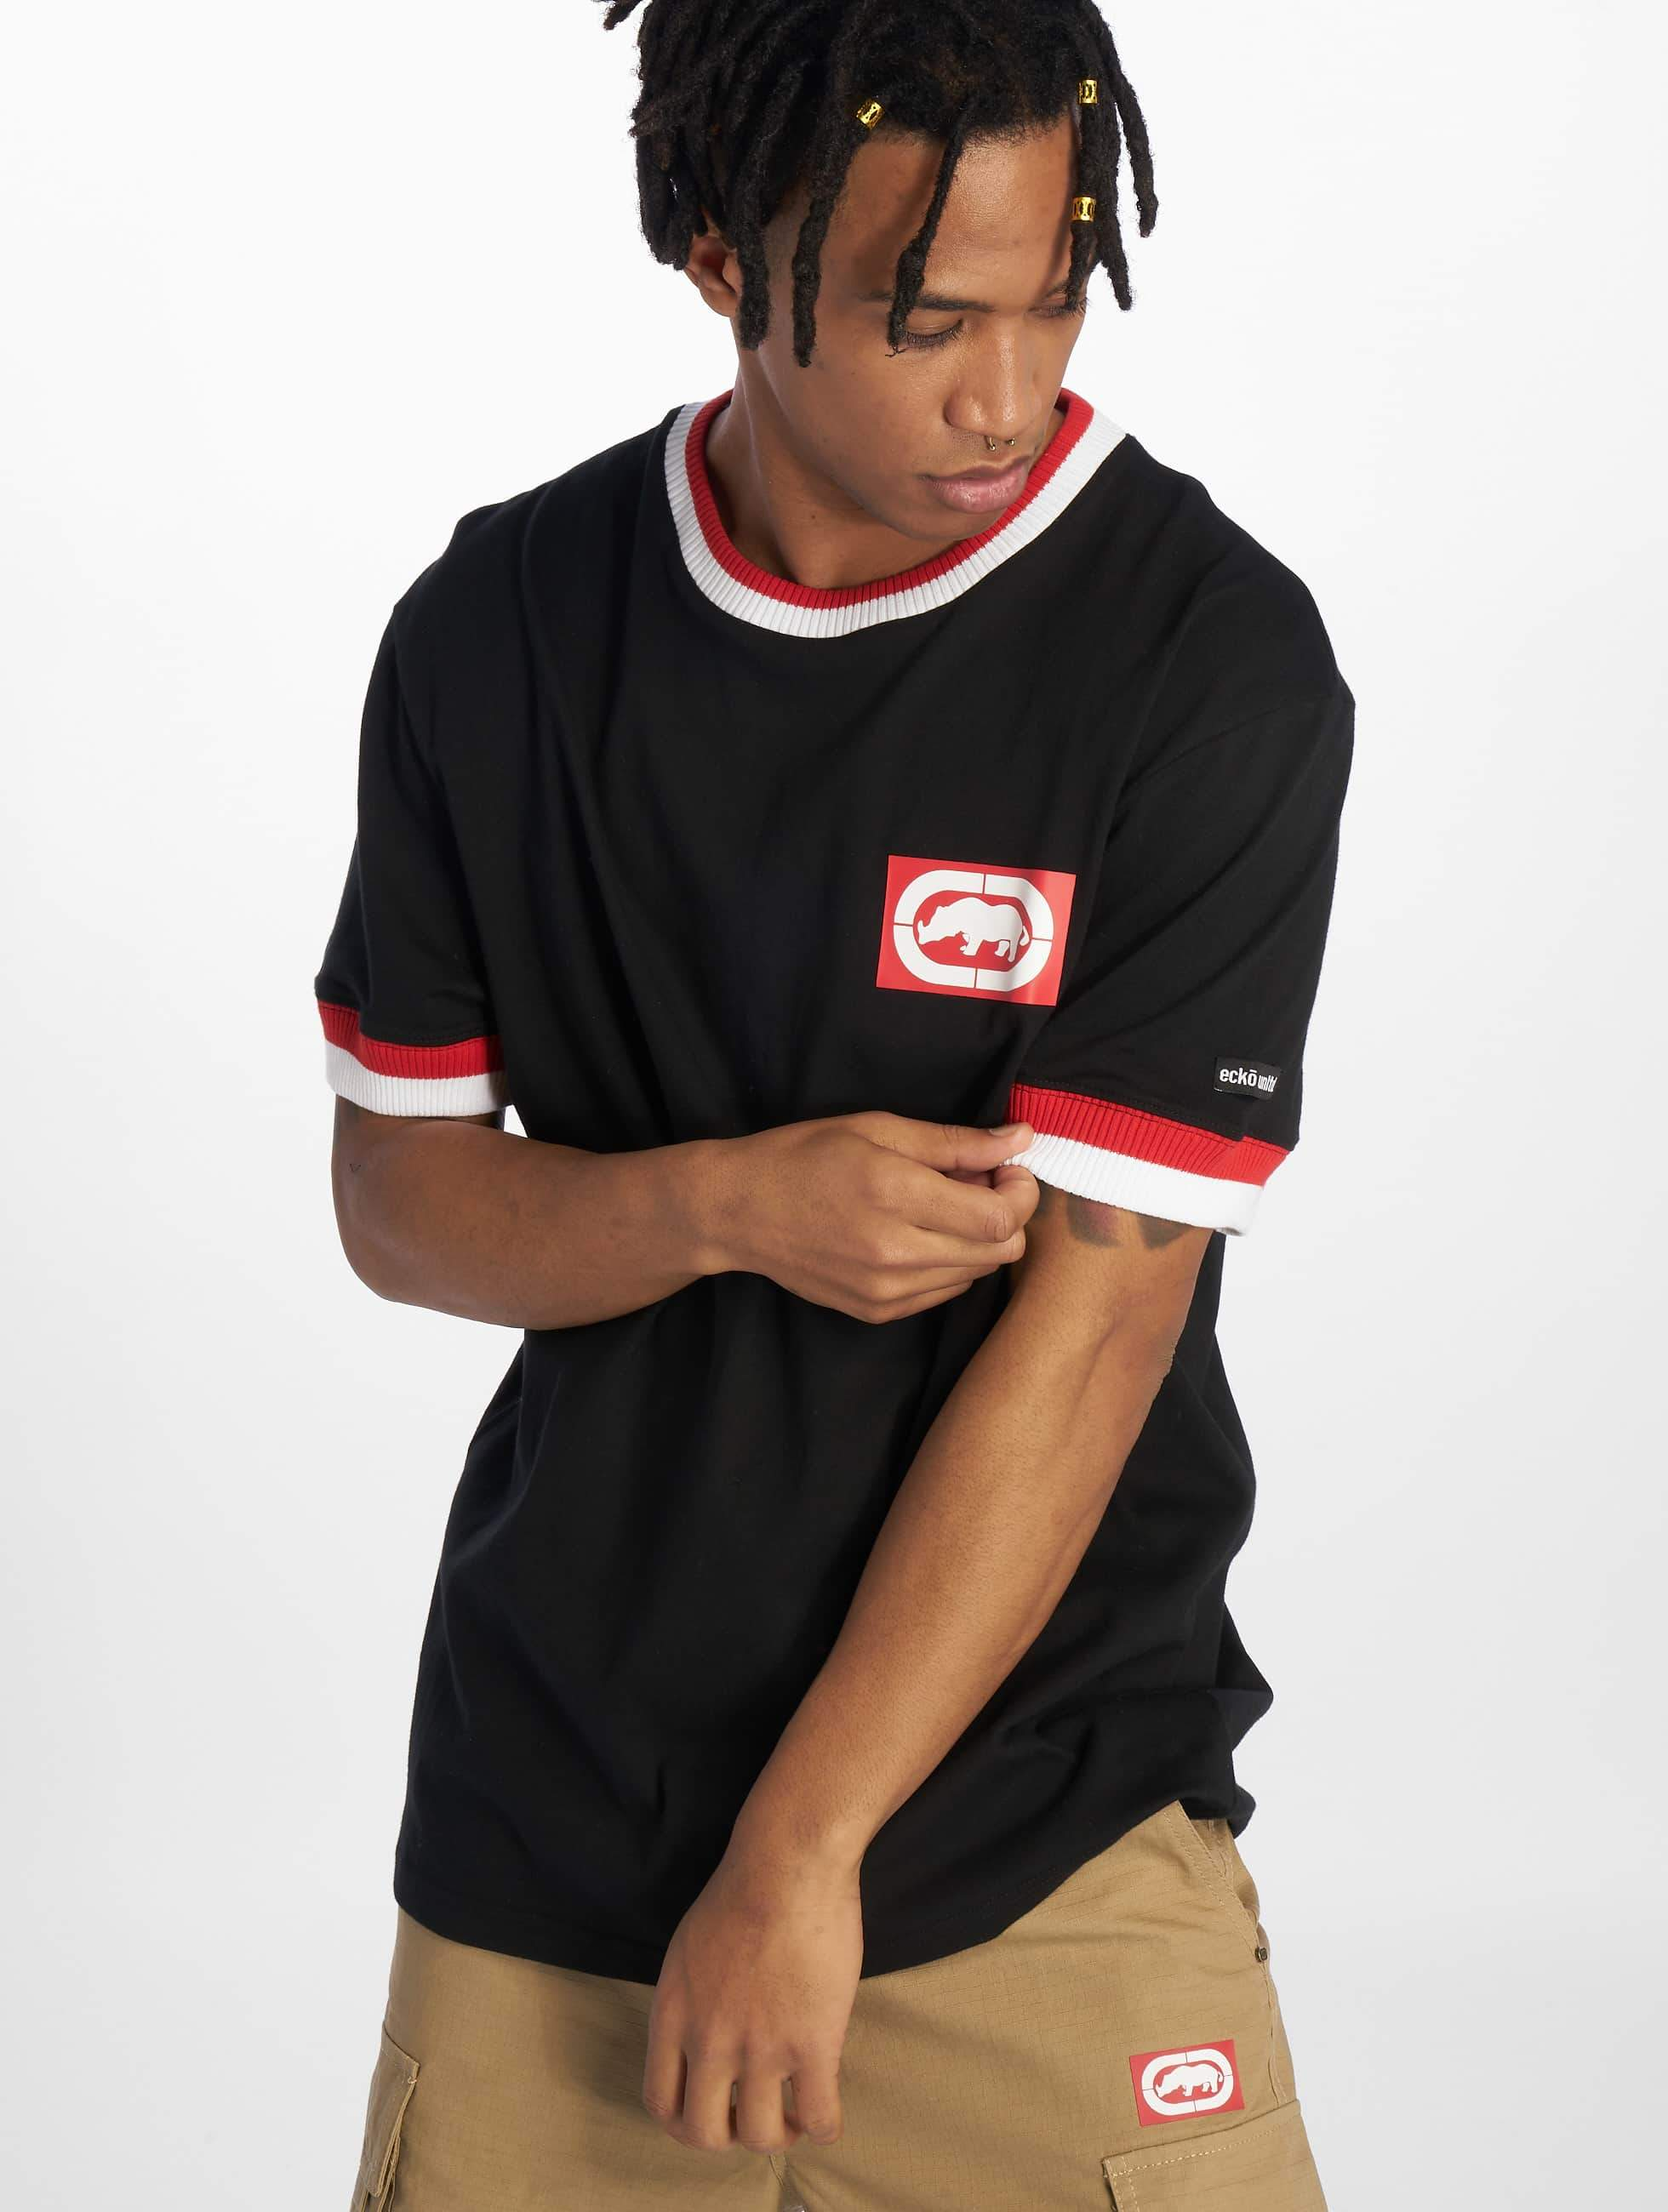 Ecko Unltd. / T-Shirt Cooper in black 3XL